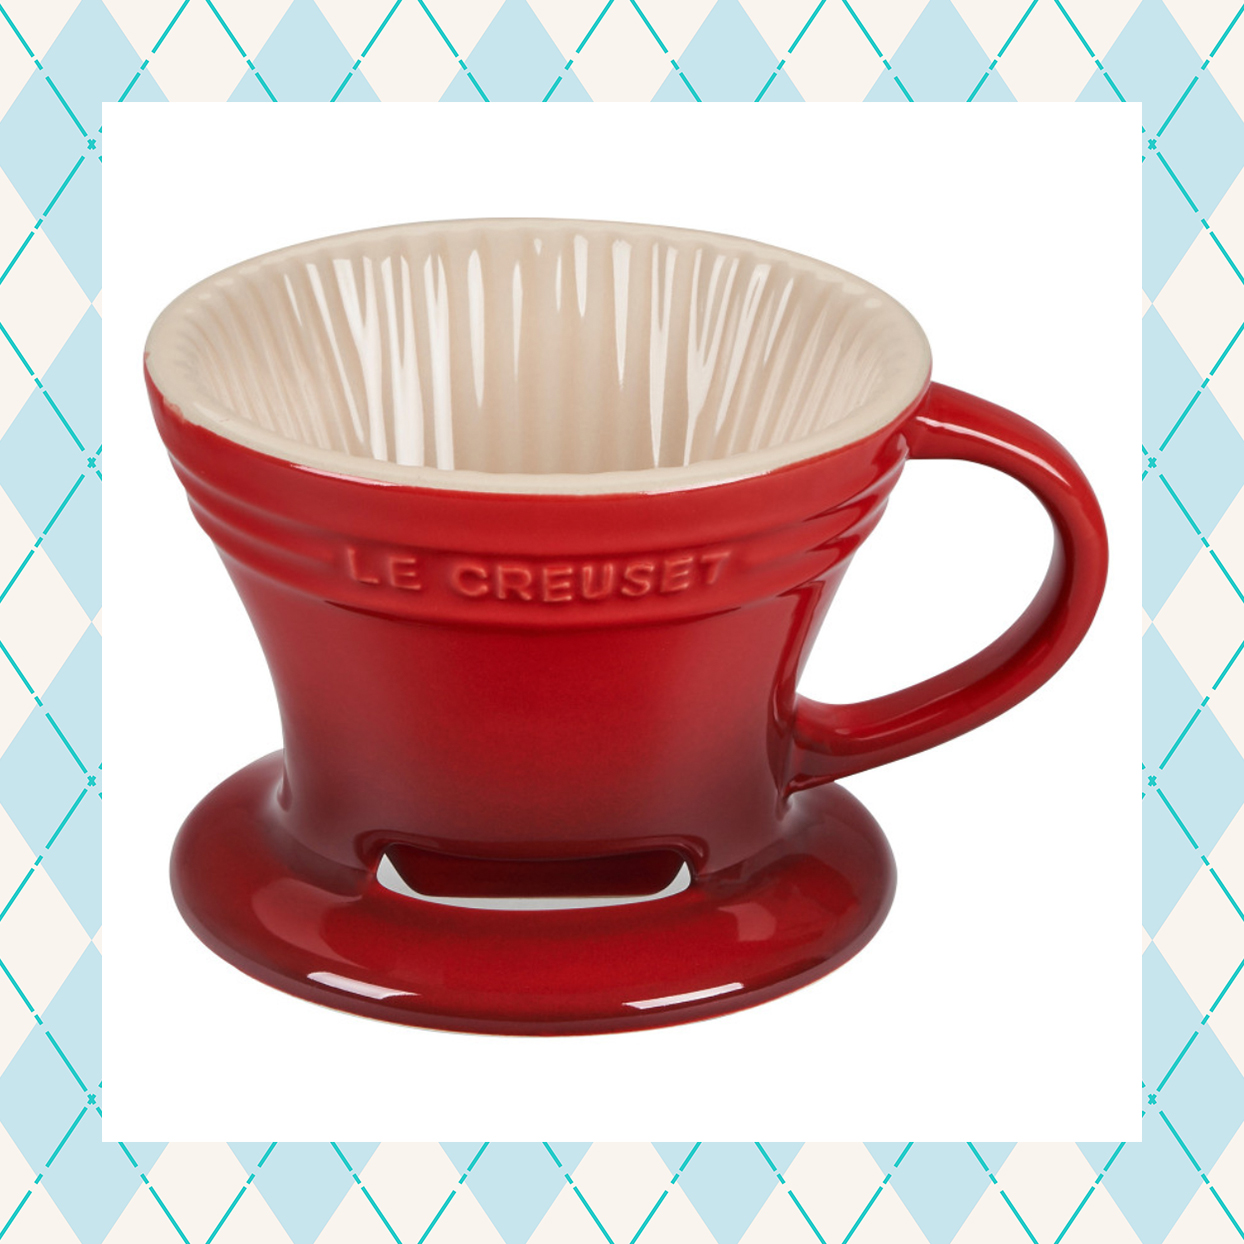 le creuset pour over coffee cone